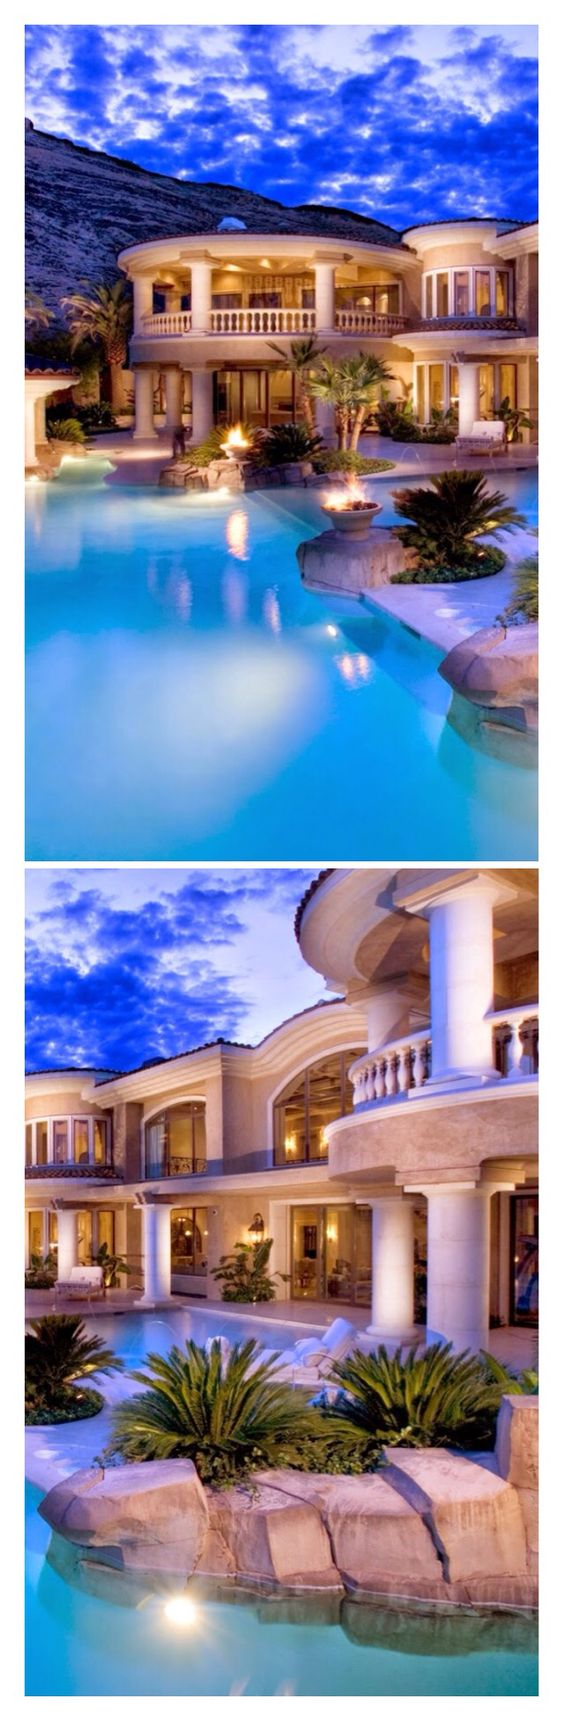 #Luxury Homes with #Pools and amazing views in the Hollywood Hills@Luxurydotcom via Houzz-